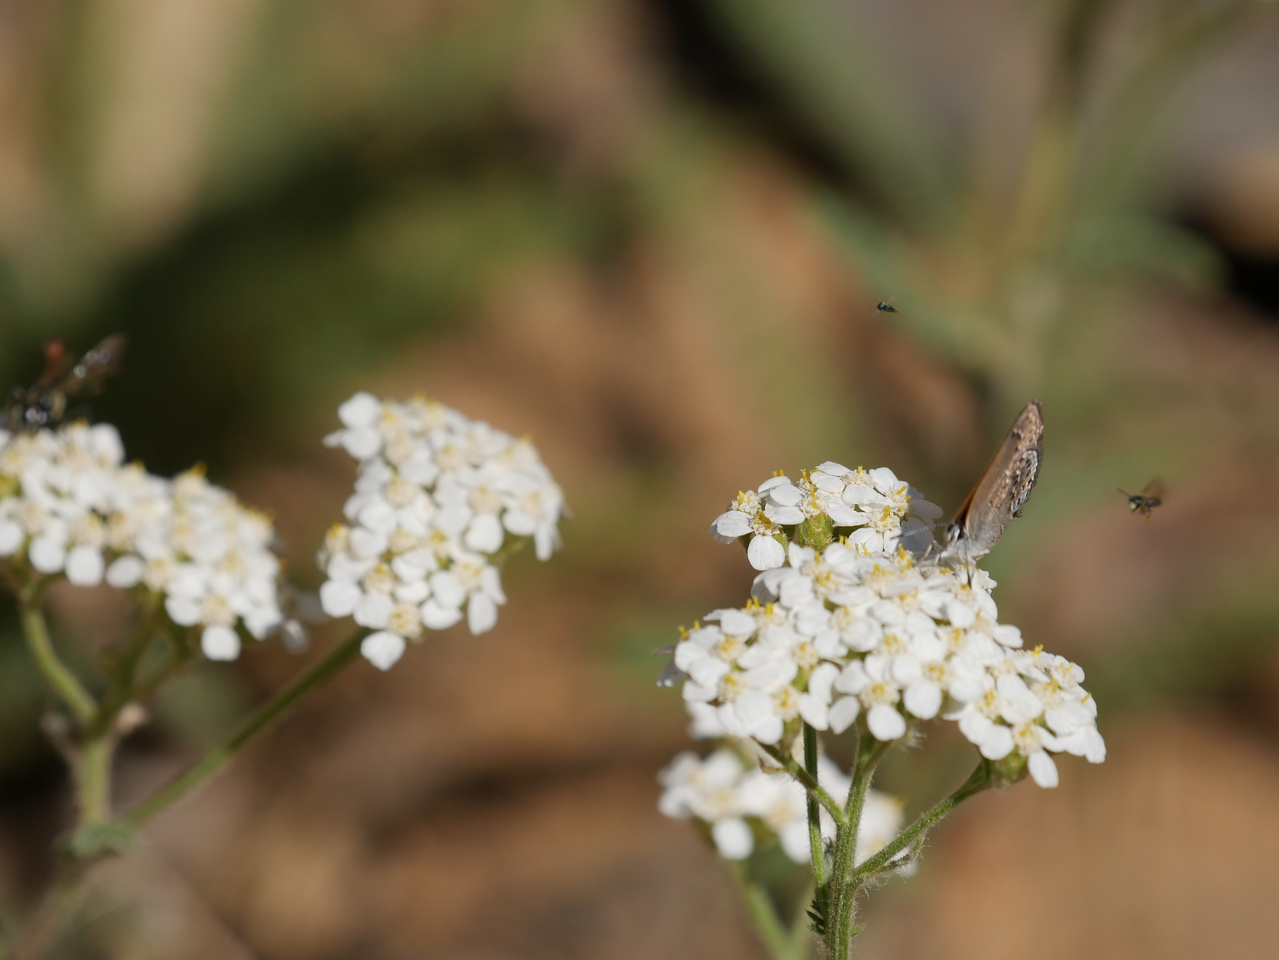 I included this photo to show the number and variety of insects visiting the yarrow.  Behind the butterfly, there are two insects flying.  At the left edge of the photo, another insect is visible on the yarrow.